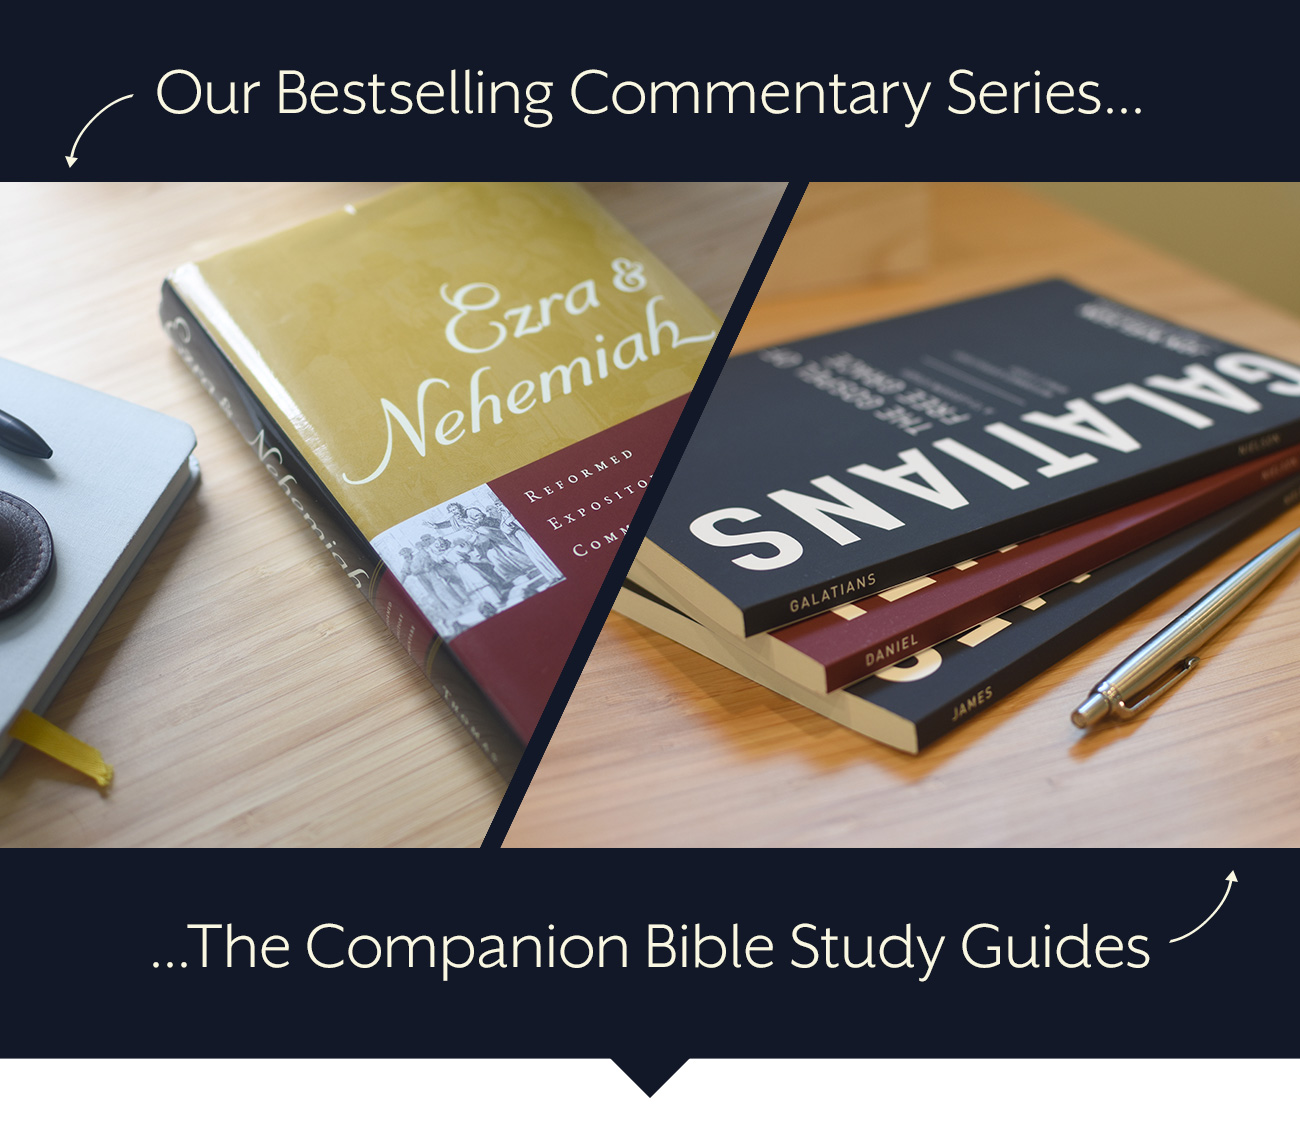 Reformed Expository Commentary & Bible Study